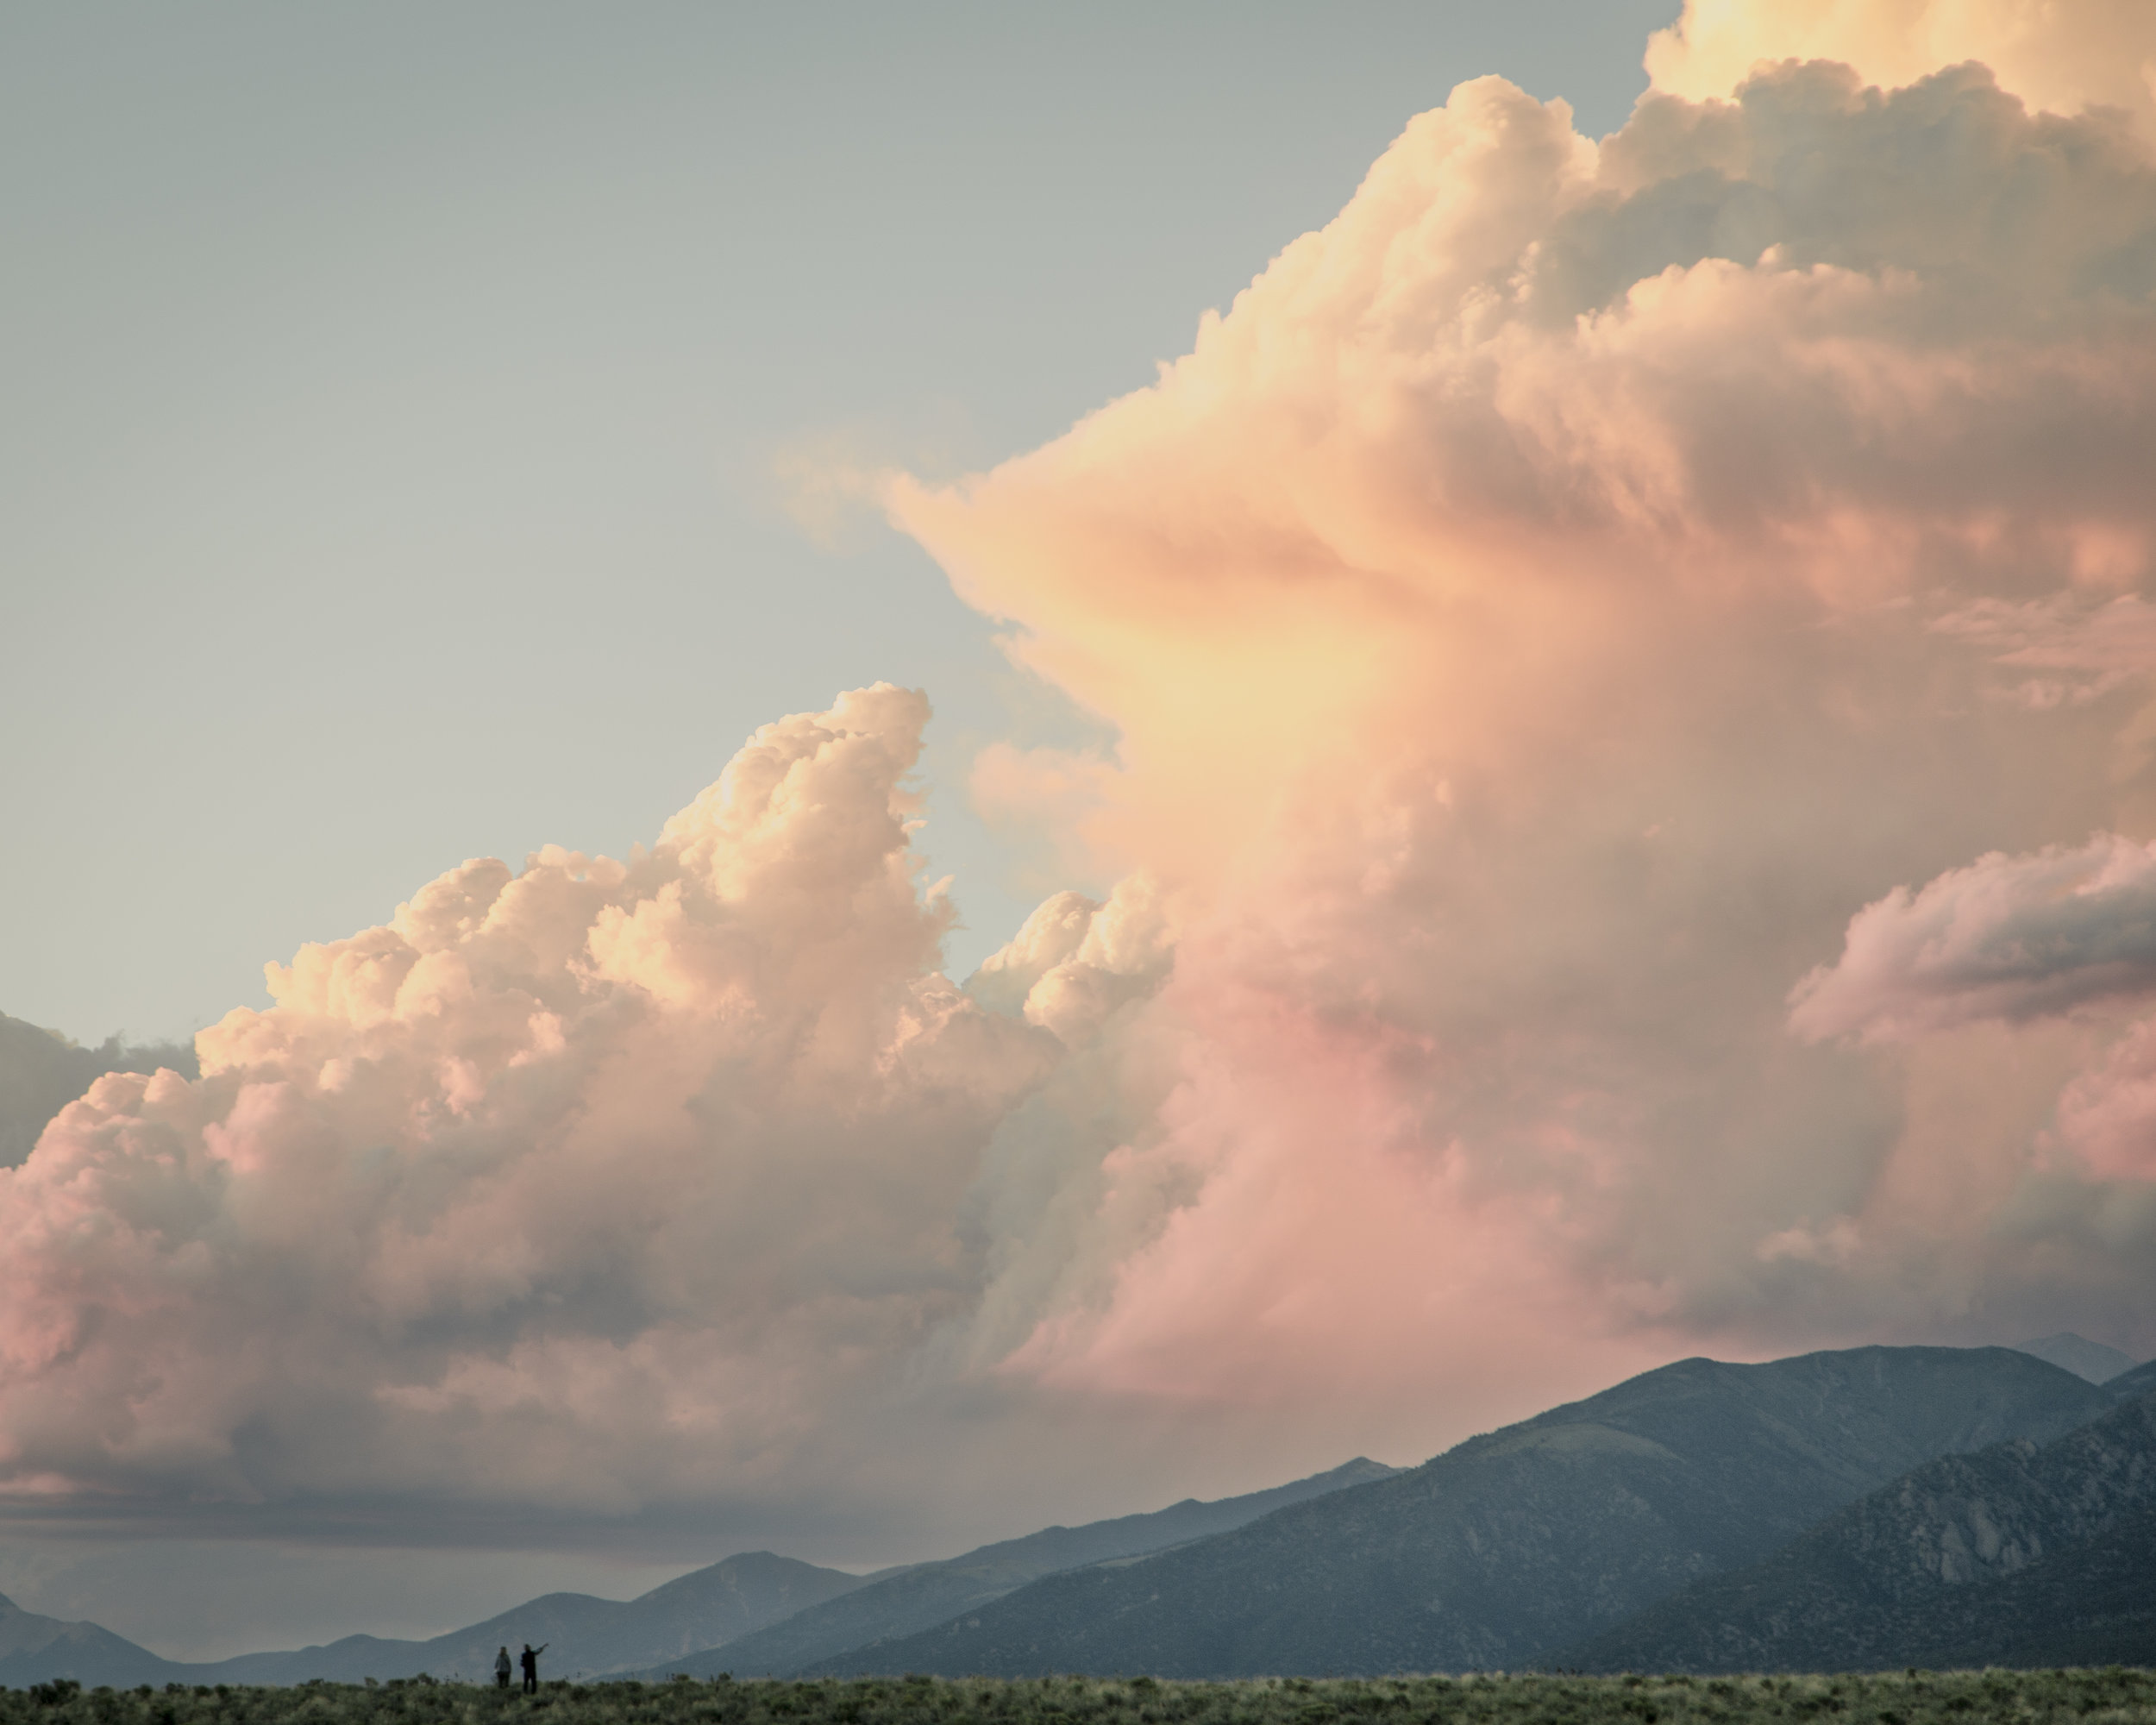 One of the many sunsets that gives the Sangre de Cristos it's name, as seen from the foot of Crestone.